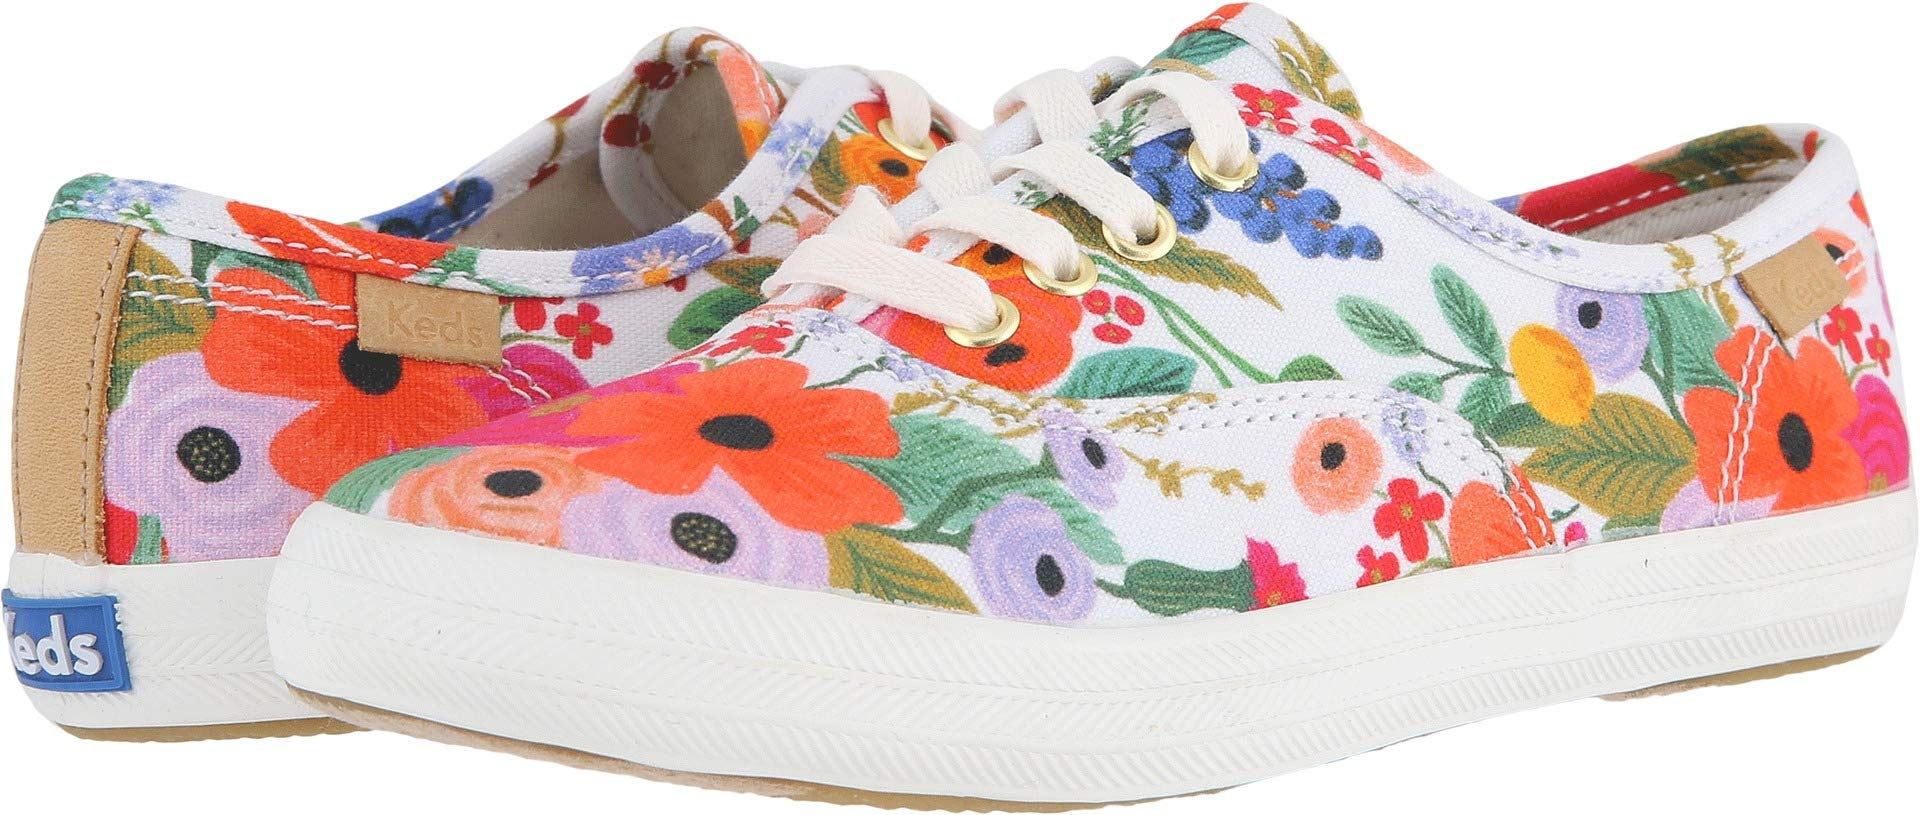 Keds Kids Girl's Rifle Paper Champion Seasonal (Little Kid/Big Kid) Garden Party 6 M US Big Kid